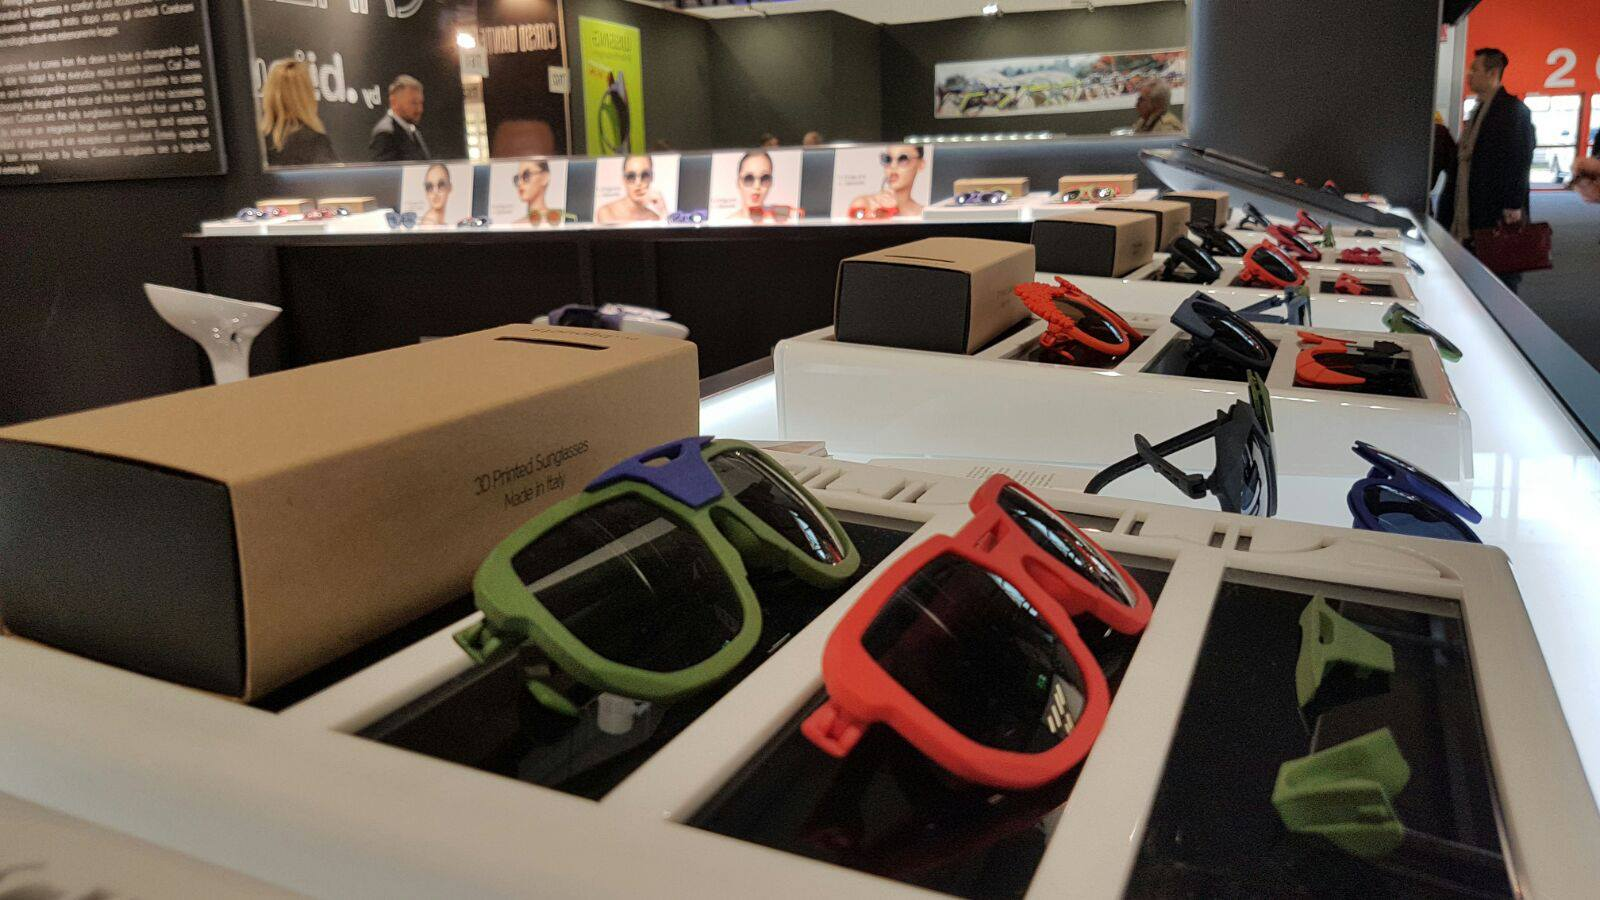 Mido 2017 and Cambiami e Cambiami2.0 eyewear by D'arc.Studio for .Bijouets